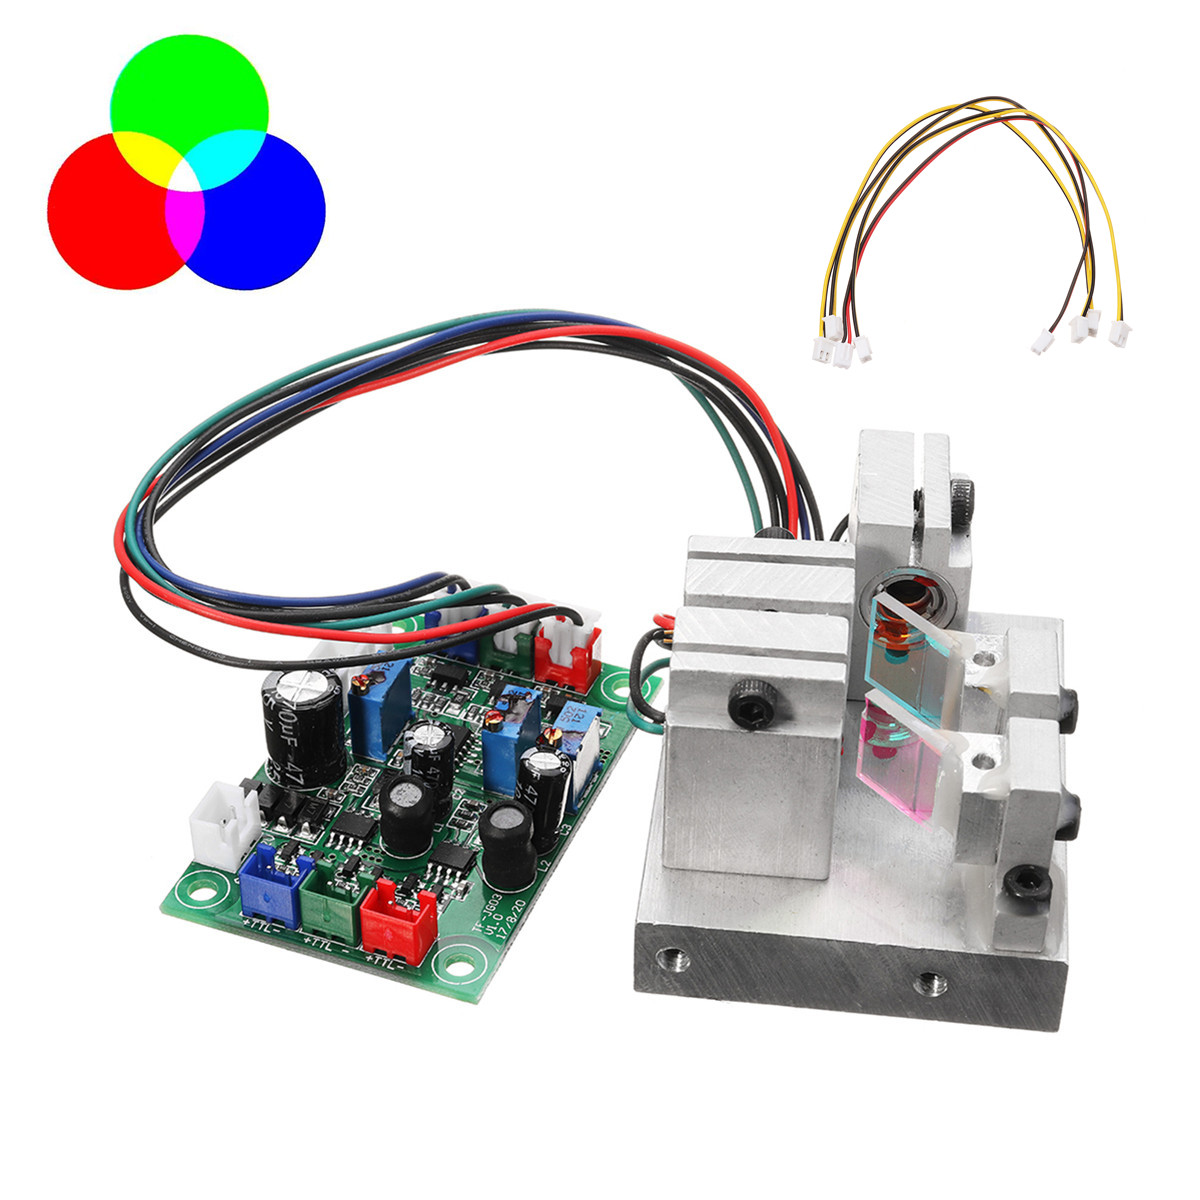 RGB 300mW White Laser Module 638nm+520nm+450nm With TTL Driver Board Modulation Temperature Protection  Science